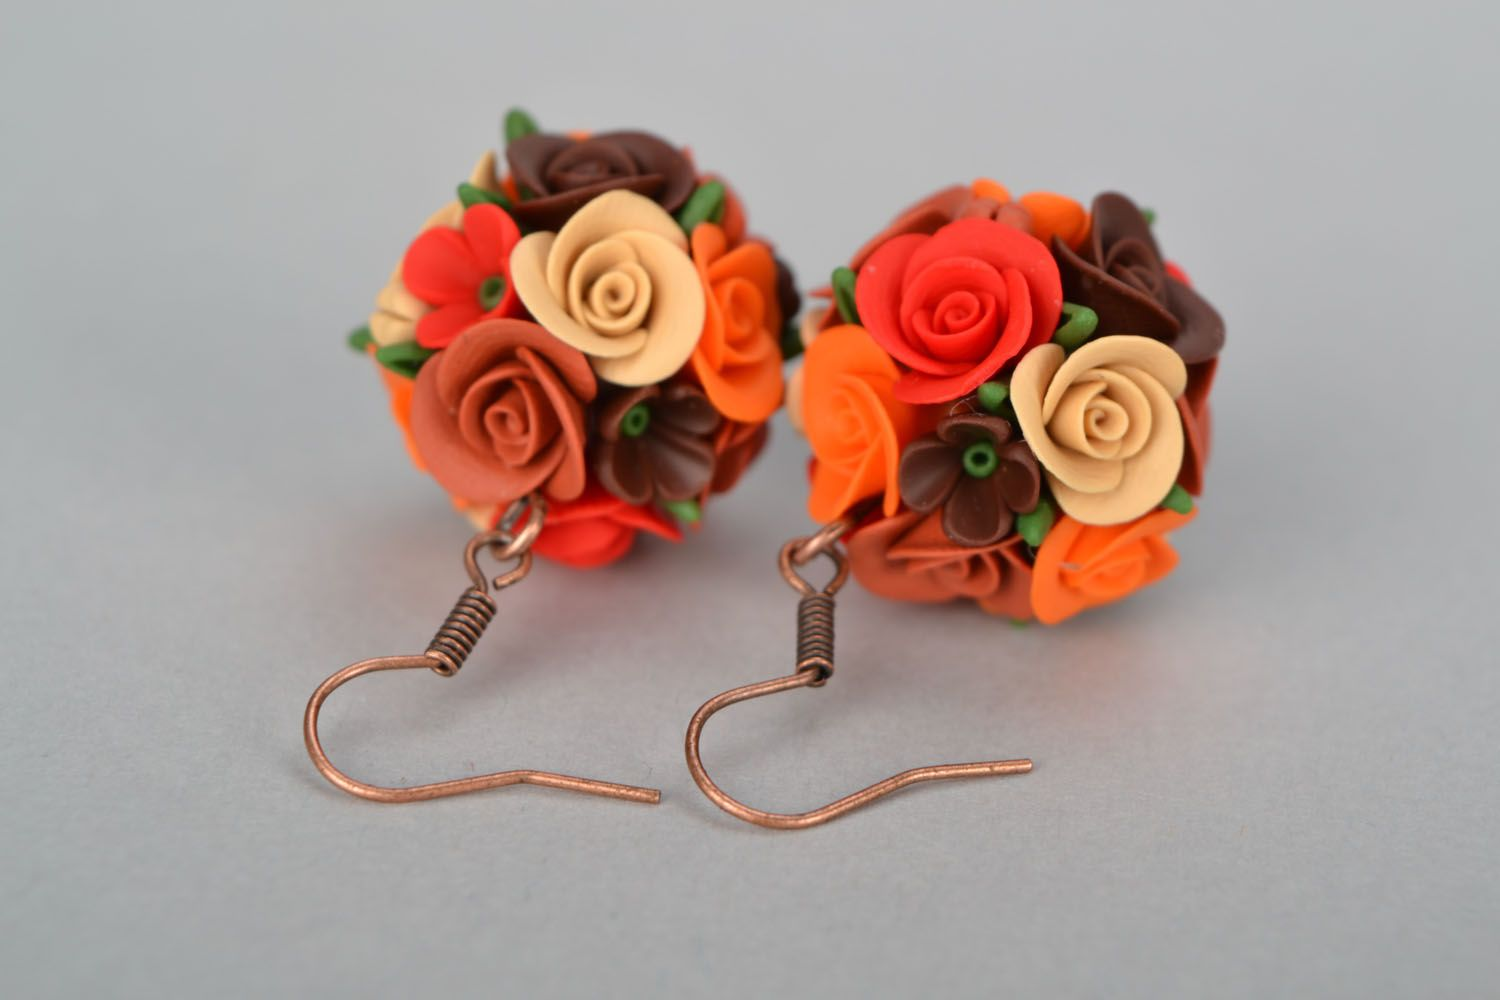 Handmade earrings Flower Balls photo 4